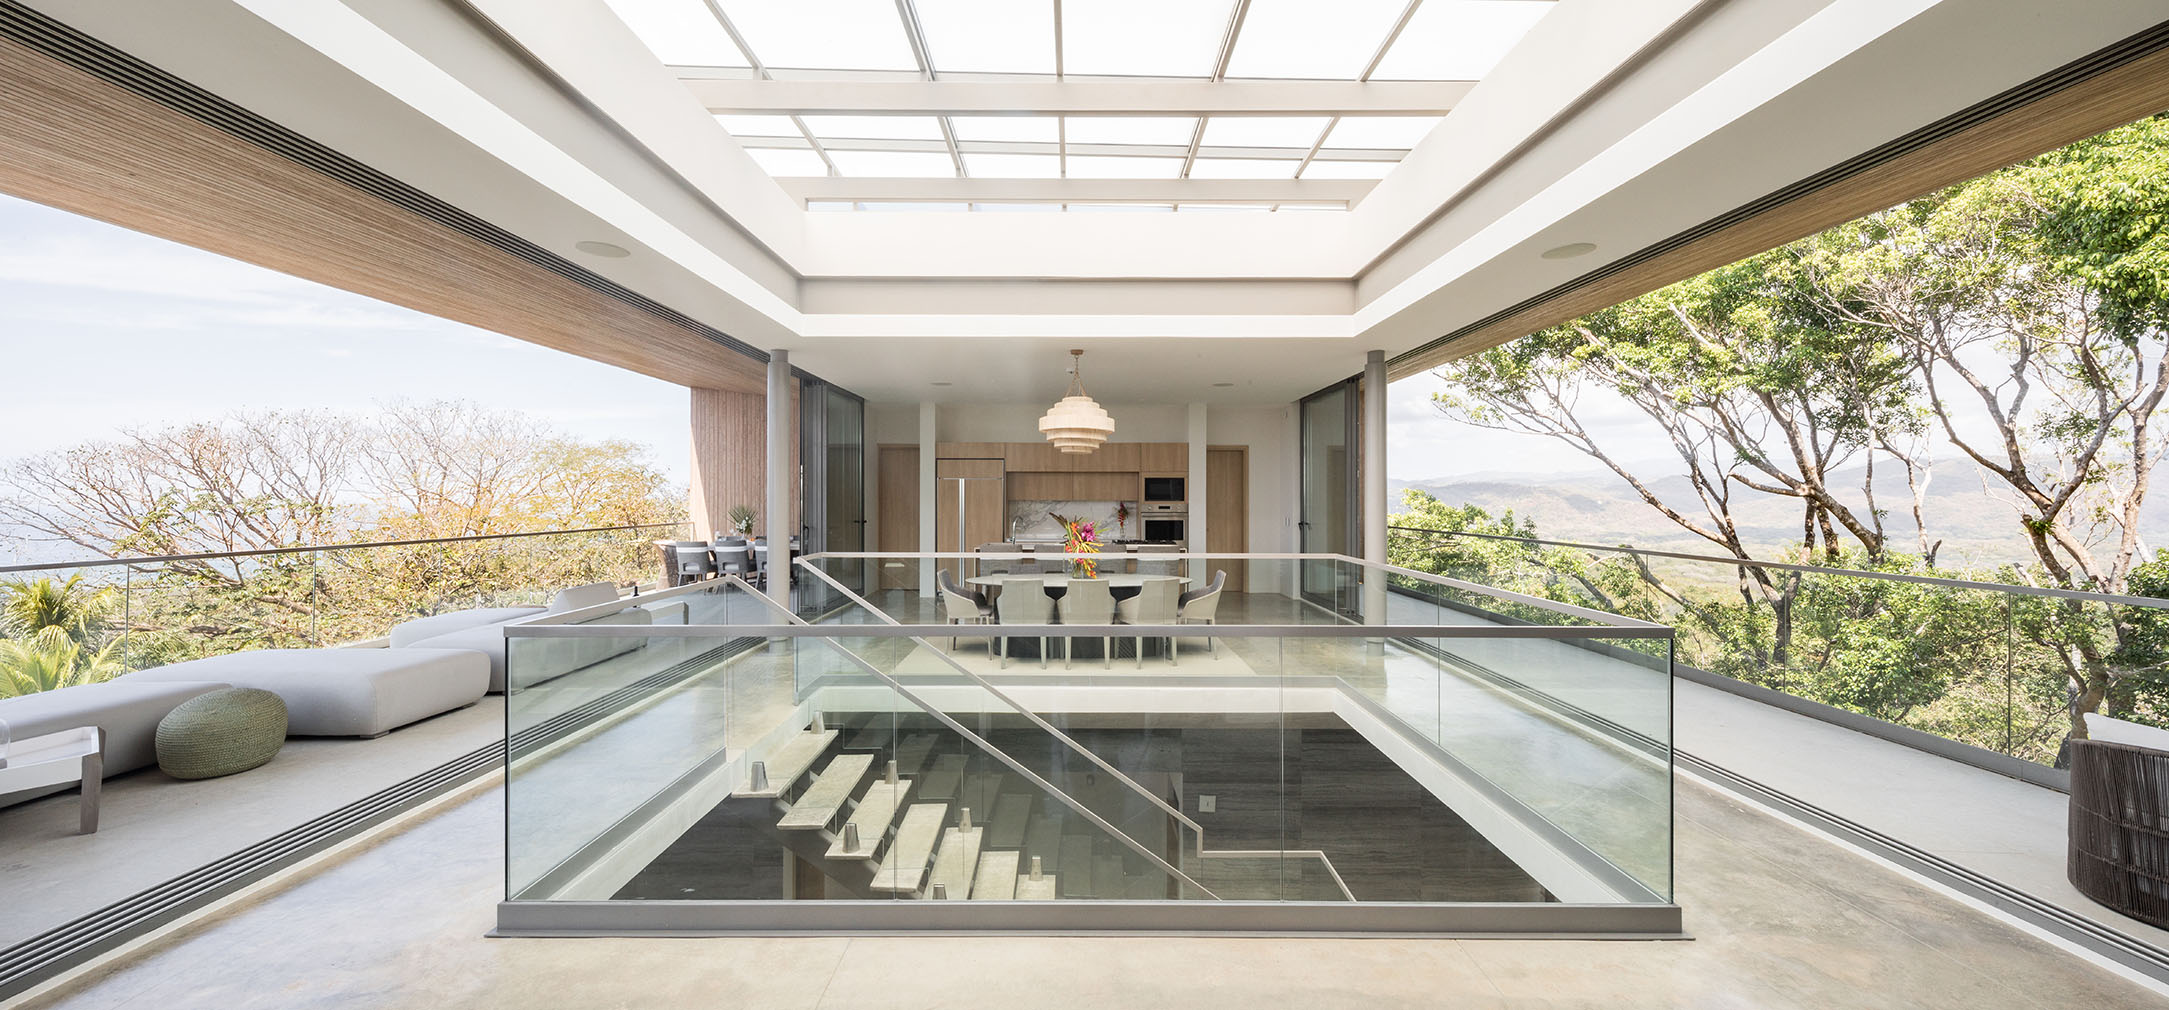 Three levels are connected by a glass-enclosed staircase atrium, which helps direct air flow through the home